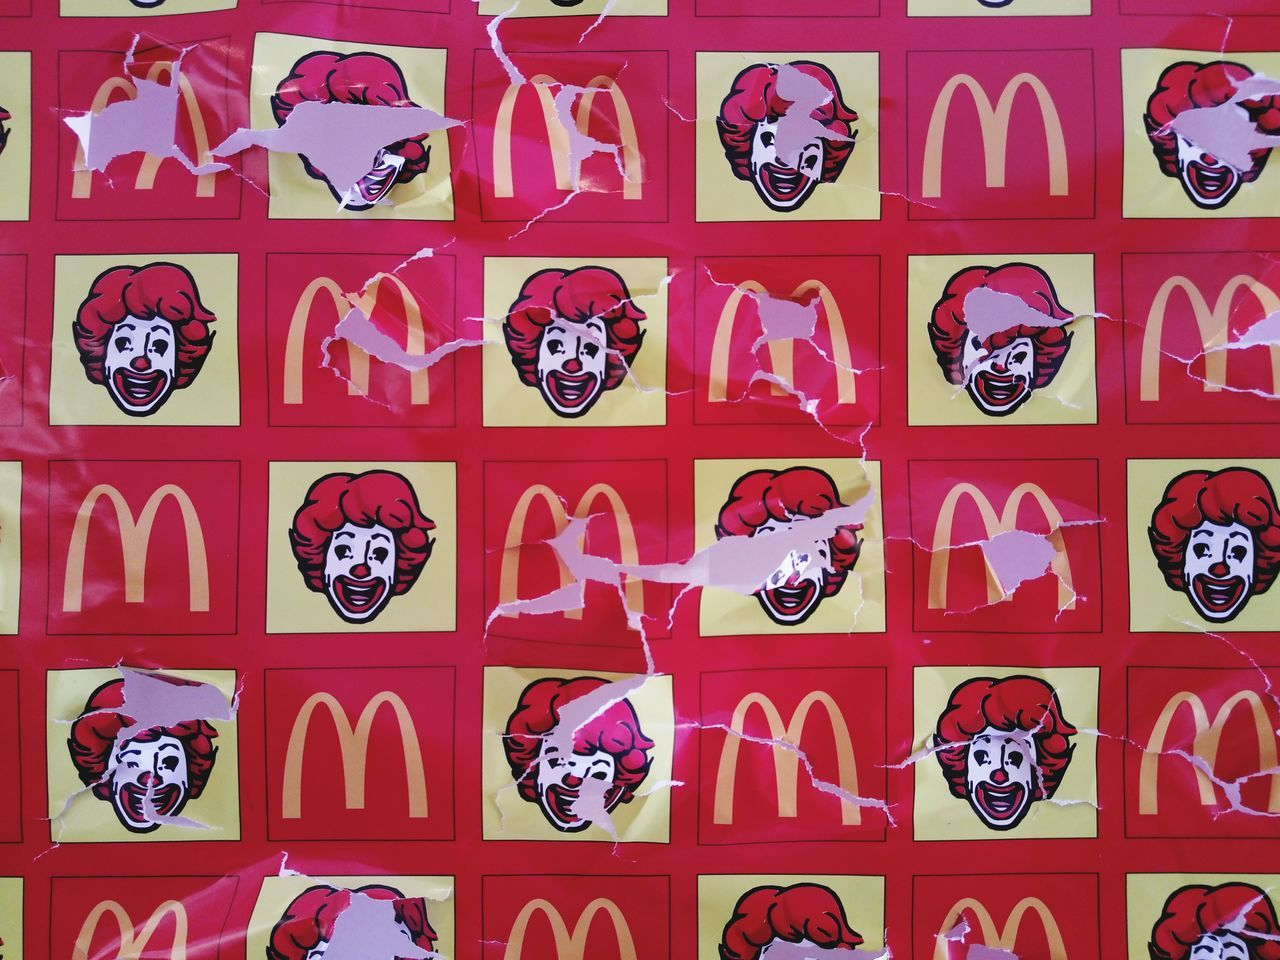 Wired World Macdonald's Pop Art Explore Fire In The Hole Non-western Script Getting Inspired Portrait The Founder Andy Warhol